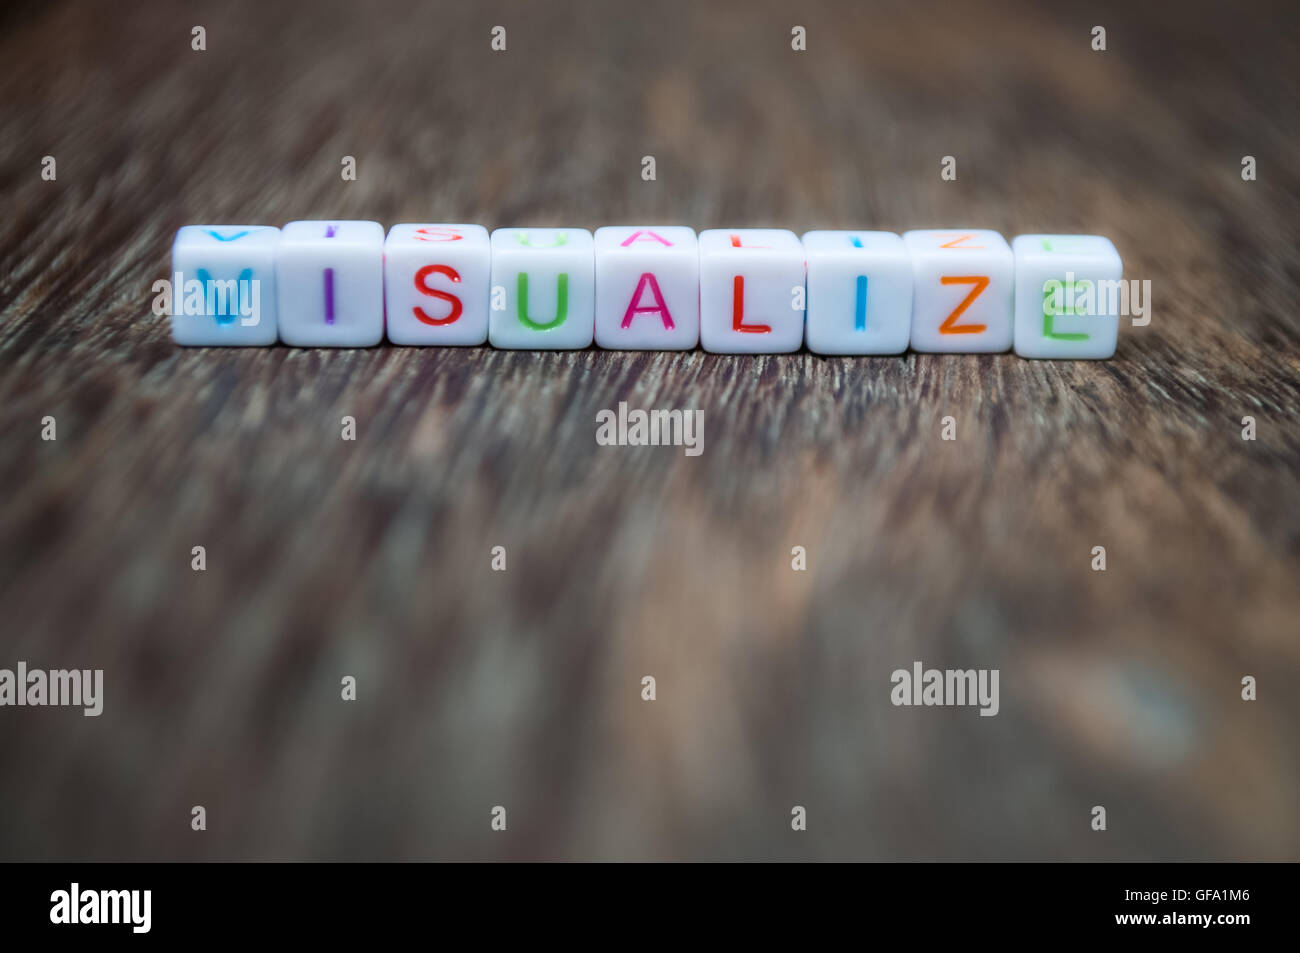 visualize word arranged from character cubes on wood table top. closeup. narrow depth of field. - Stock Image